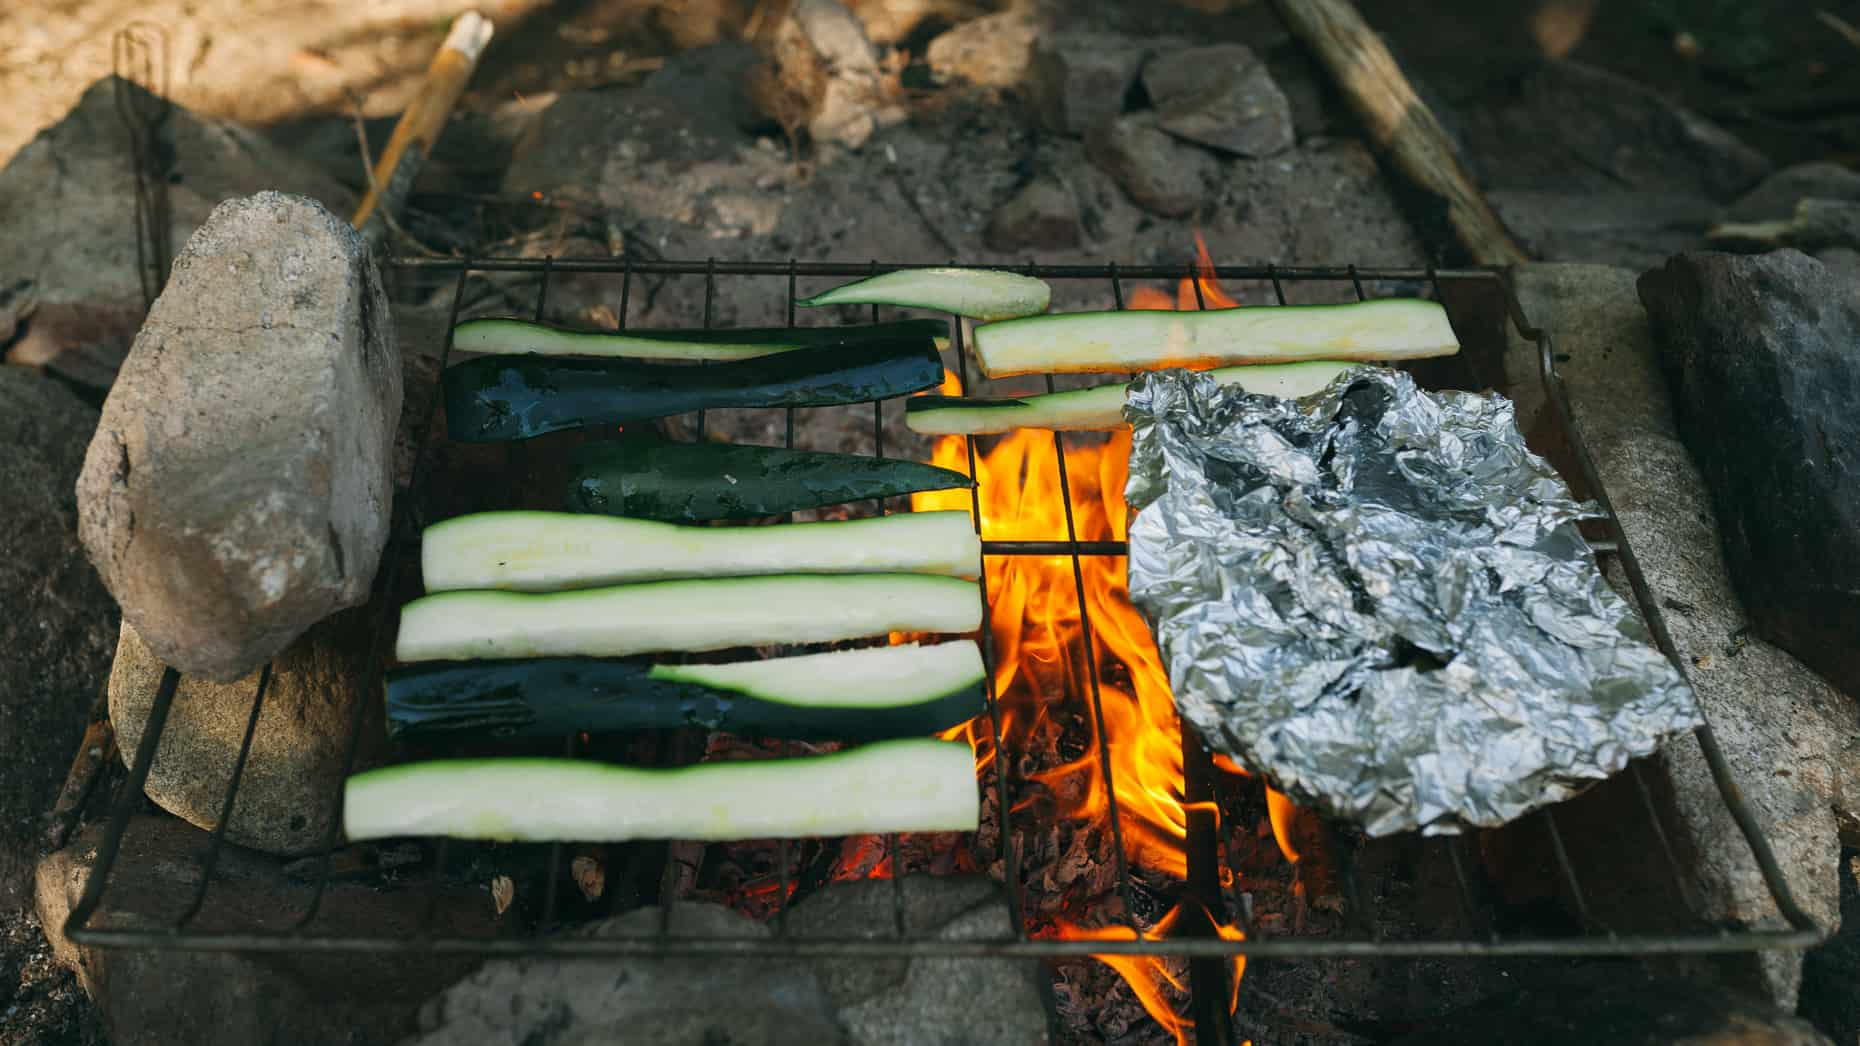 Zucchini cooking on the open fire.